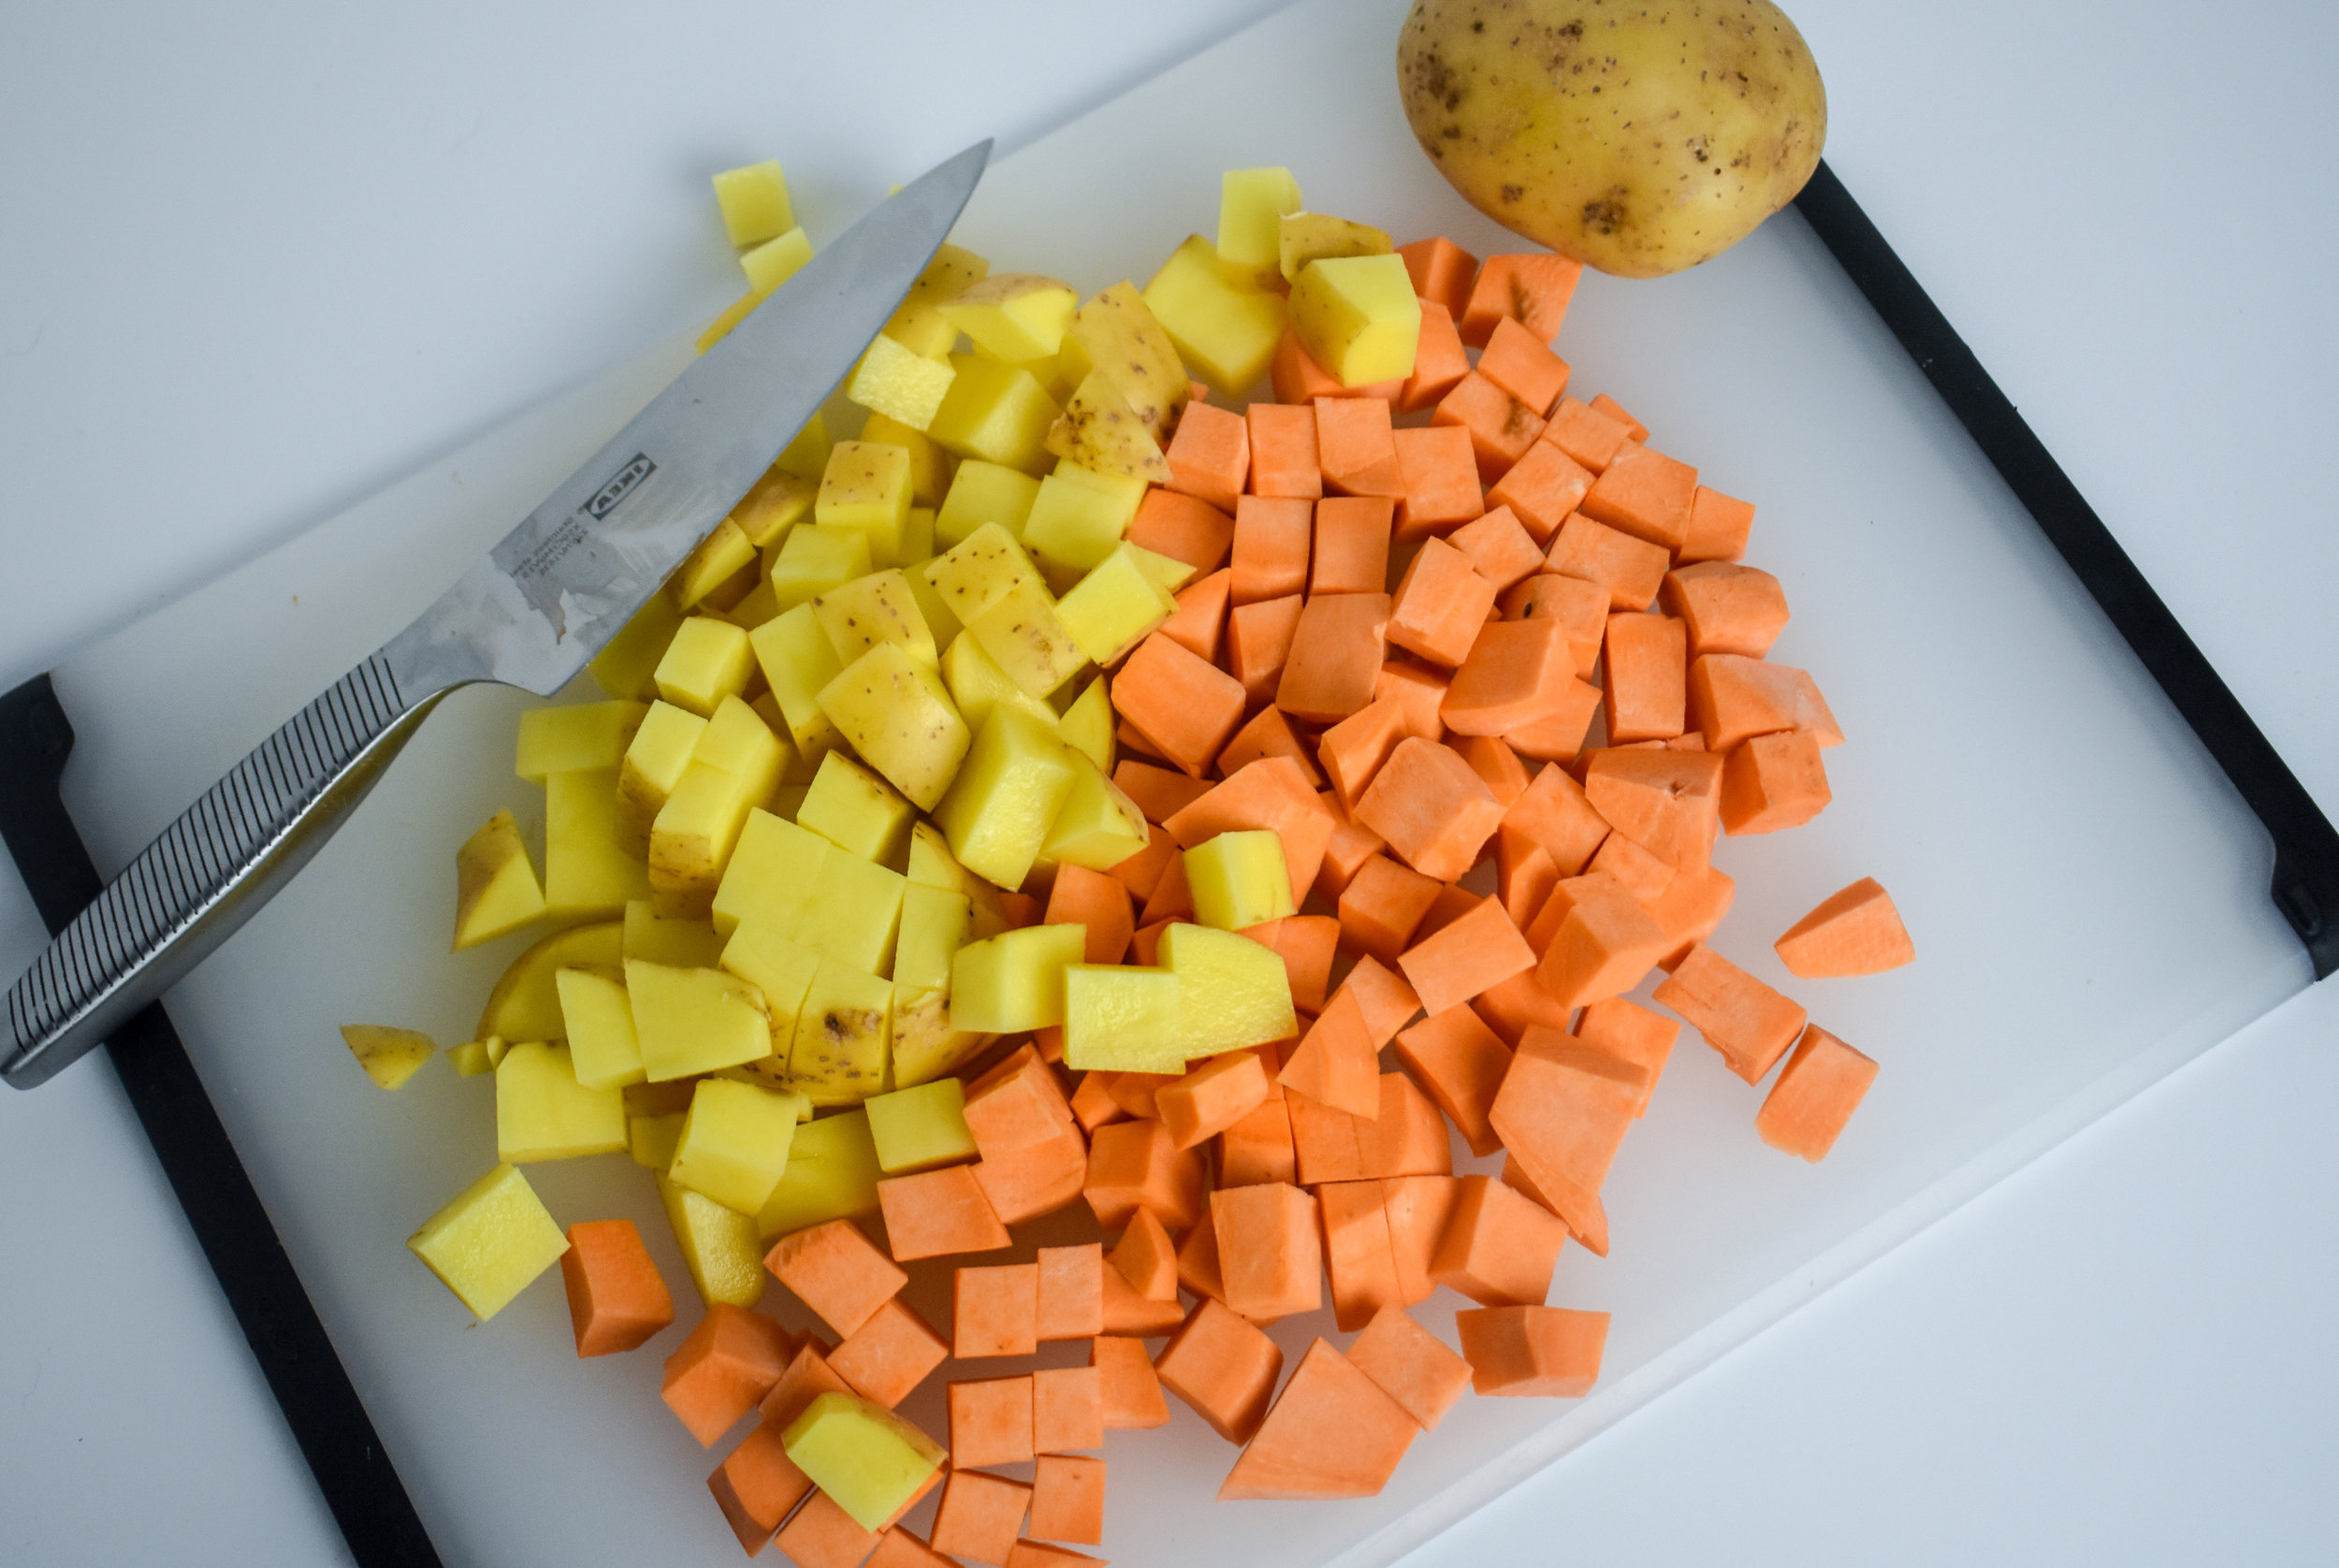 1. Start by cubing your potatoes into small bit size chunks. Add the cubes to a bowl with water and put in microwave for 5 minutes.